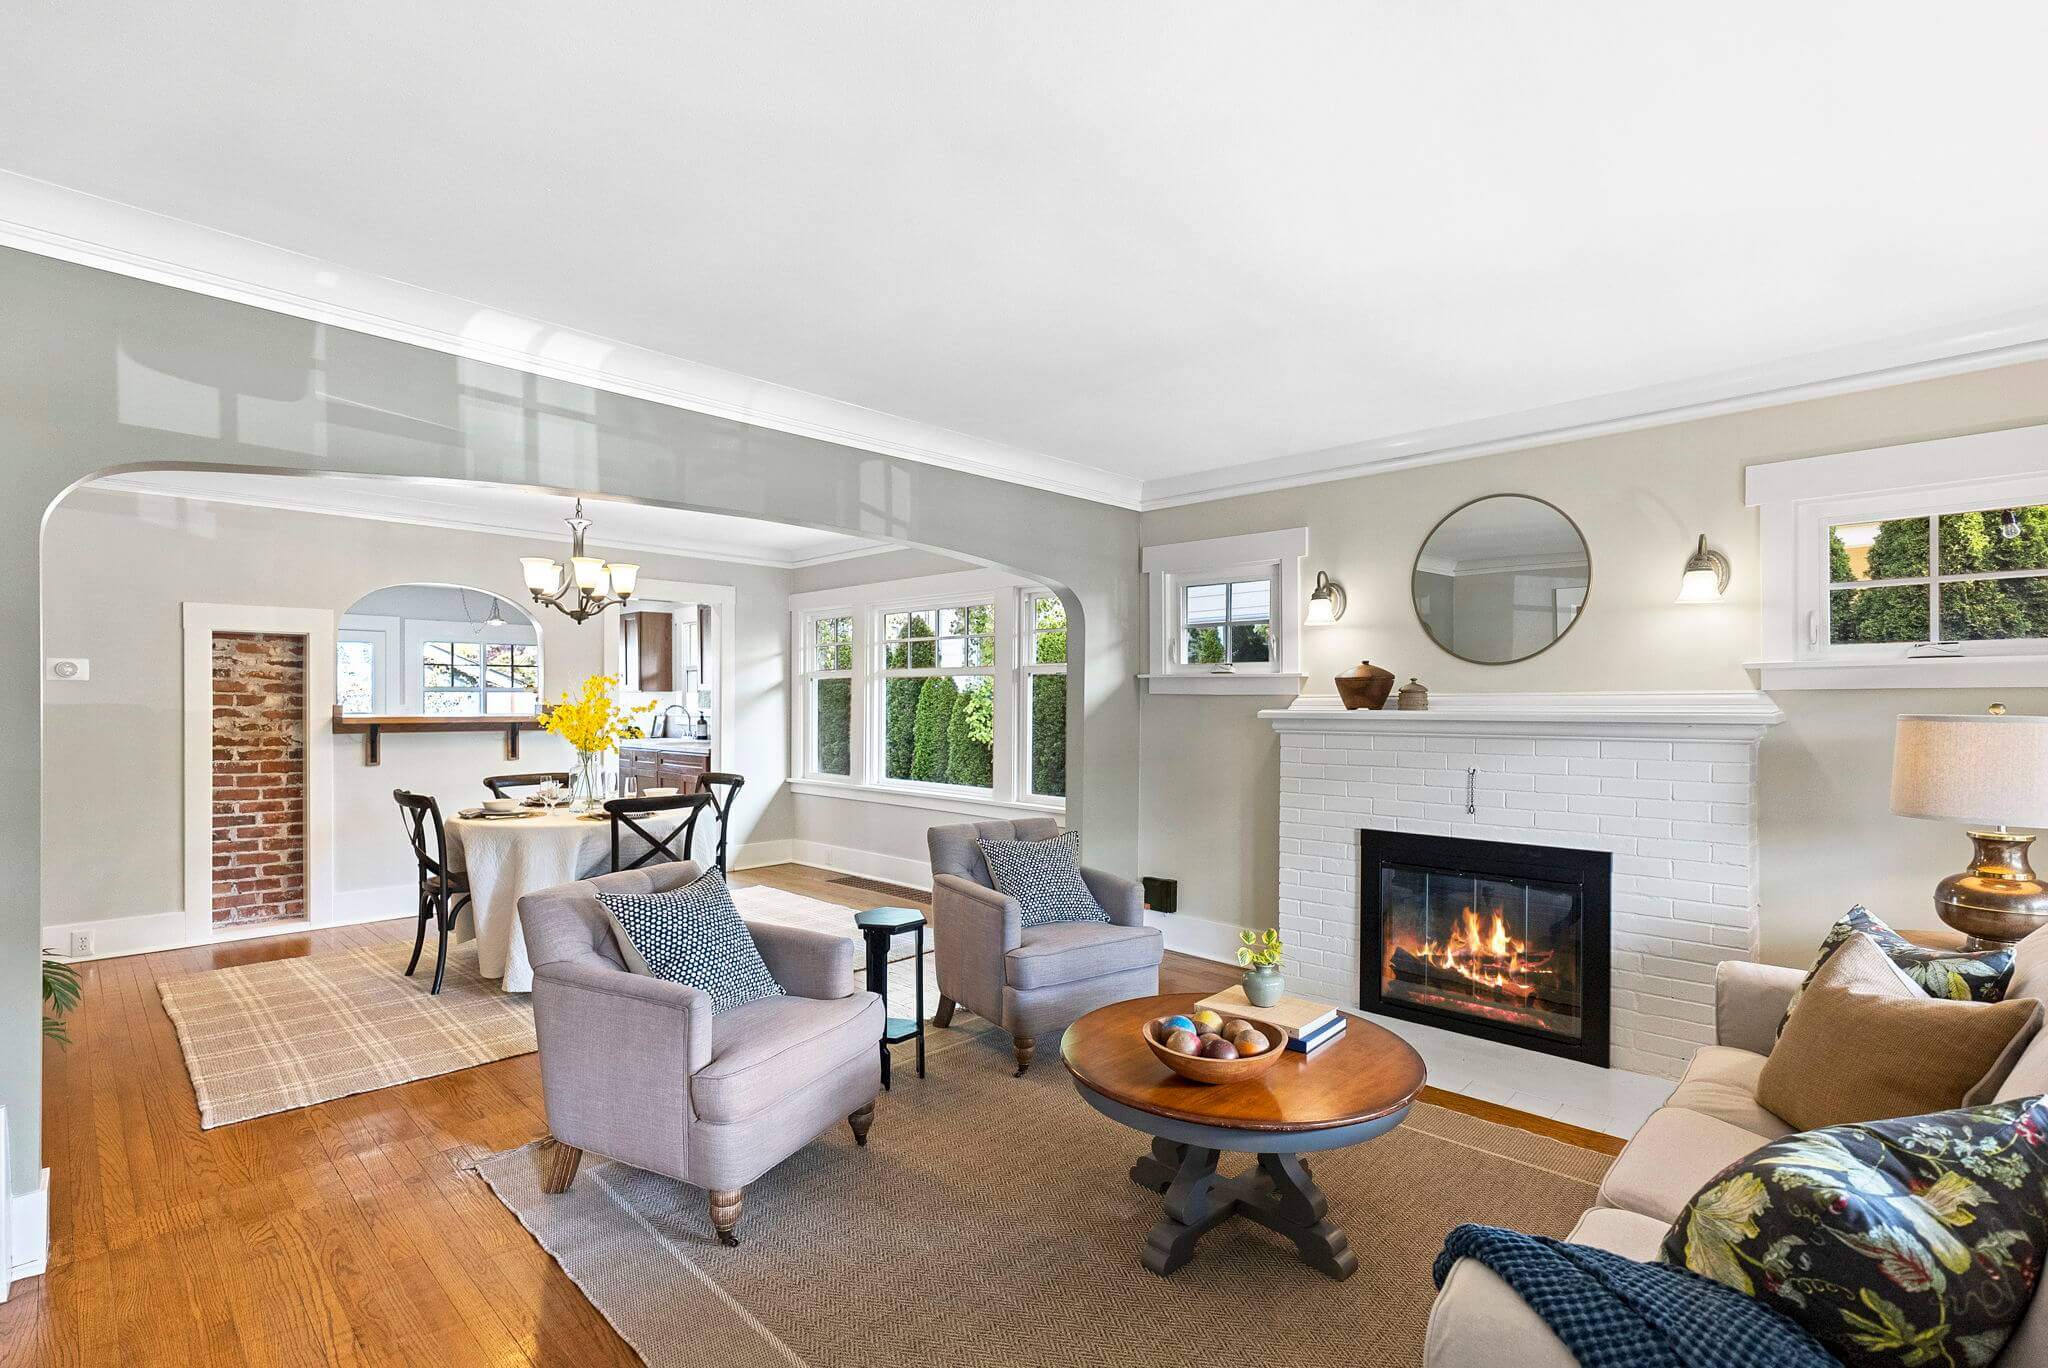 Hardwood floors in the living and dining rooms